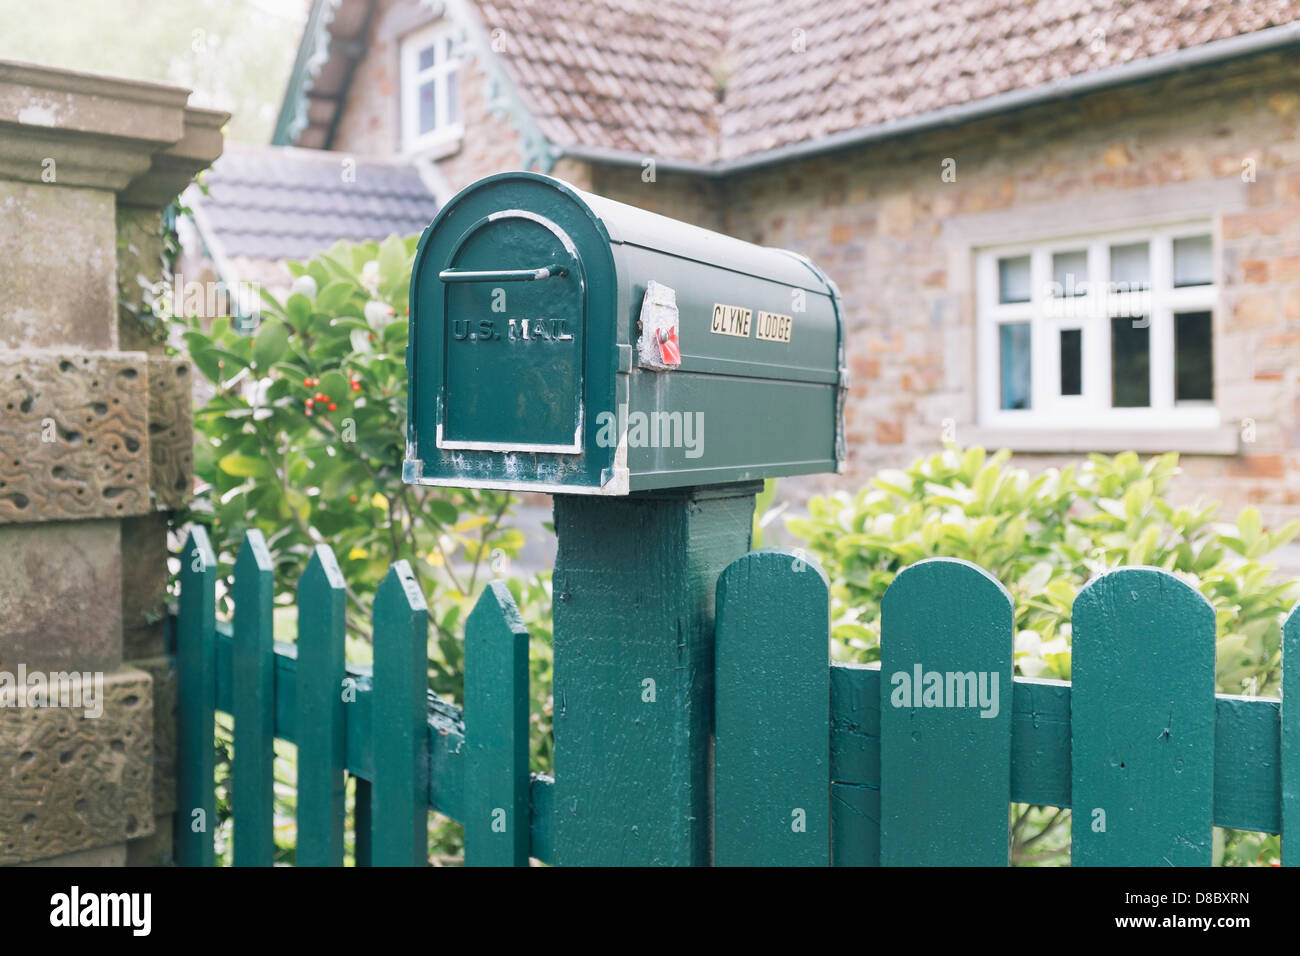 US Postal service post box - Stock Image